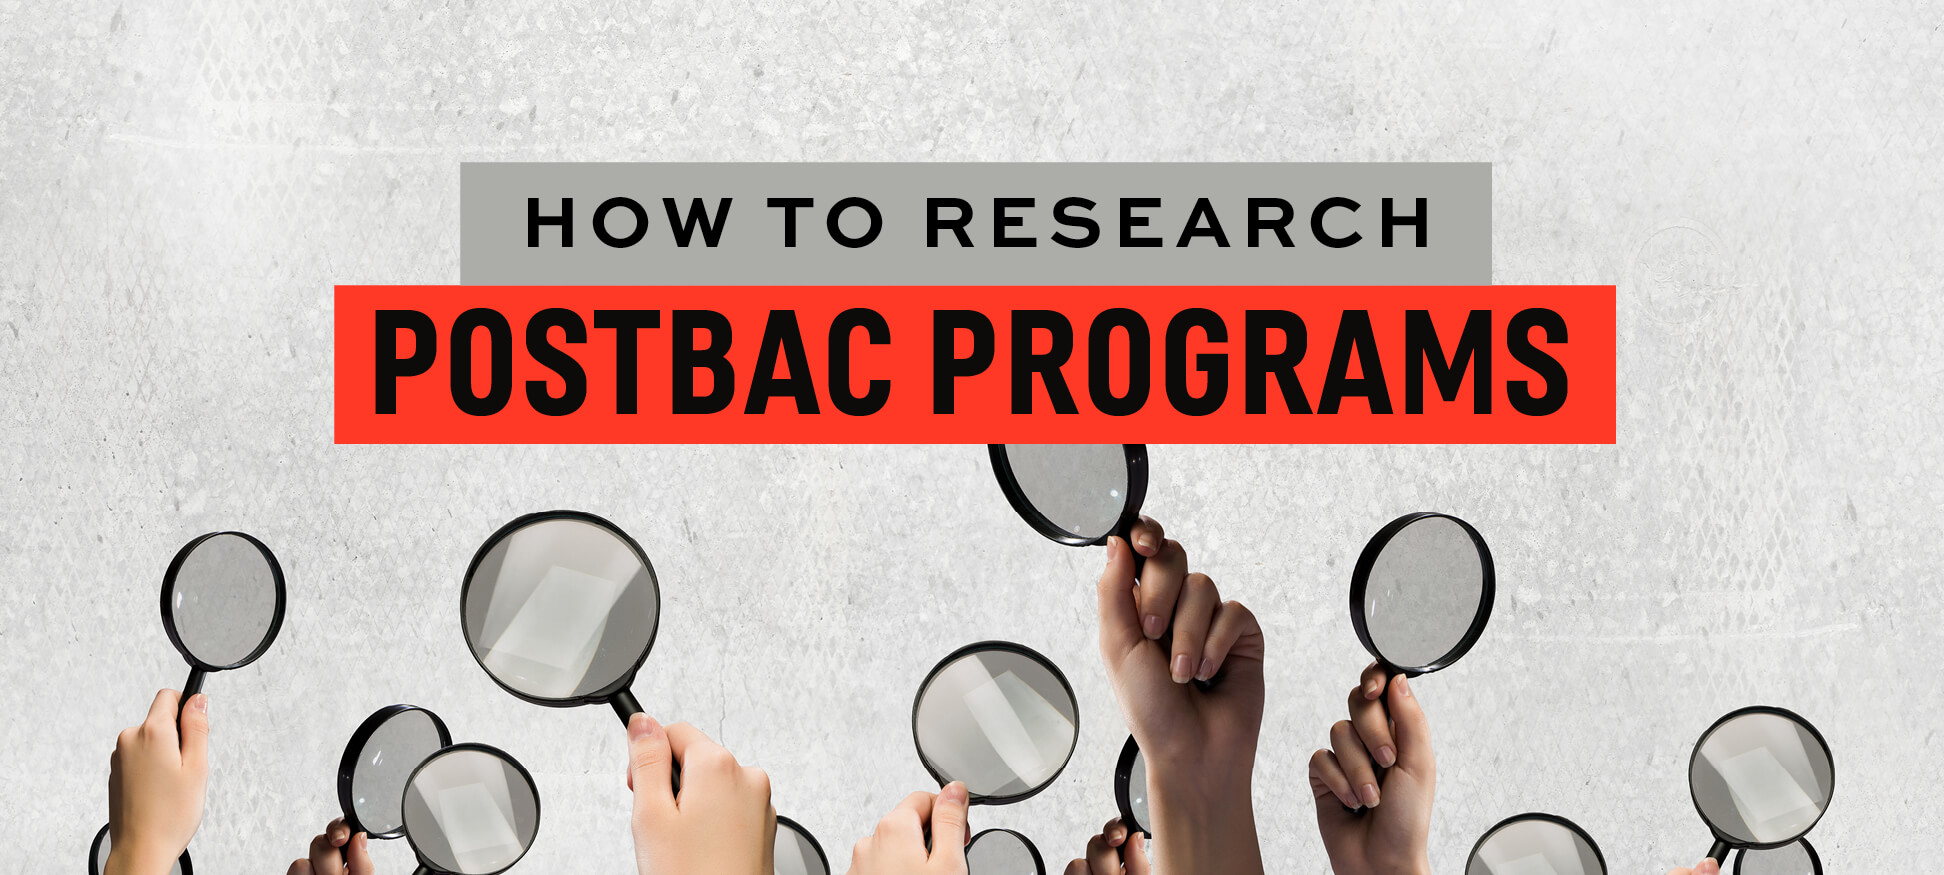 Download your free guide to applying successfully to postbac programs!